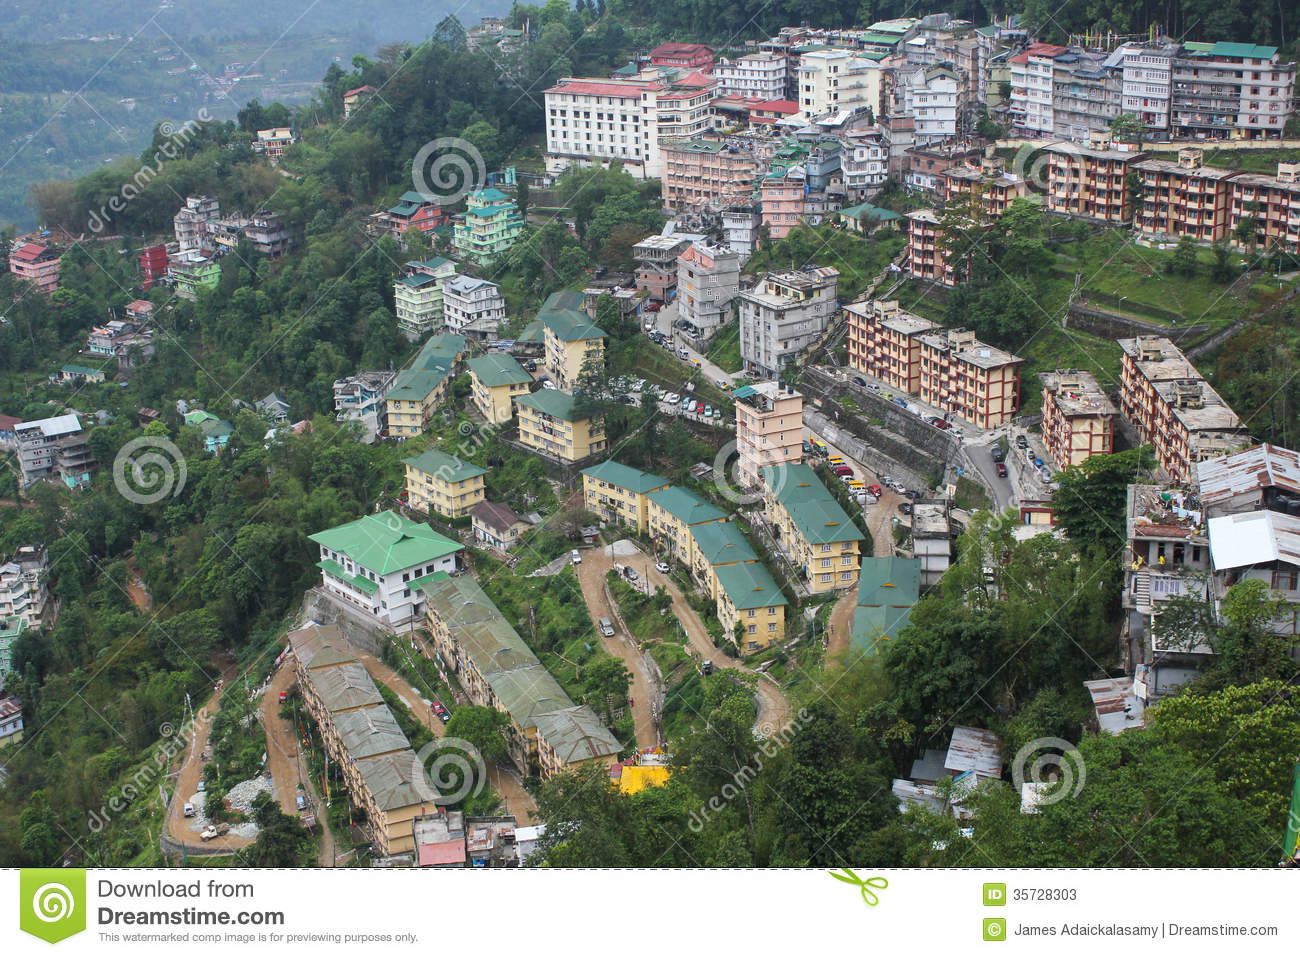 Aerial View Of Gangtokcapital City Of Sikkim Stock Photos  : aerial view sikkim taken rope car 35728303 from www.dreamstime.com size 1300 x 957 jpeg 296kB